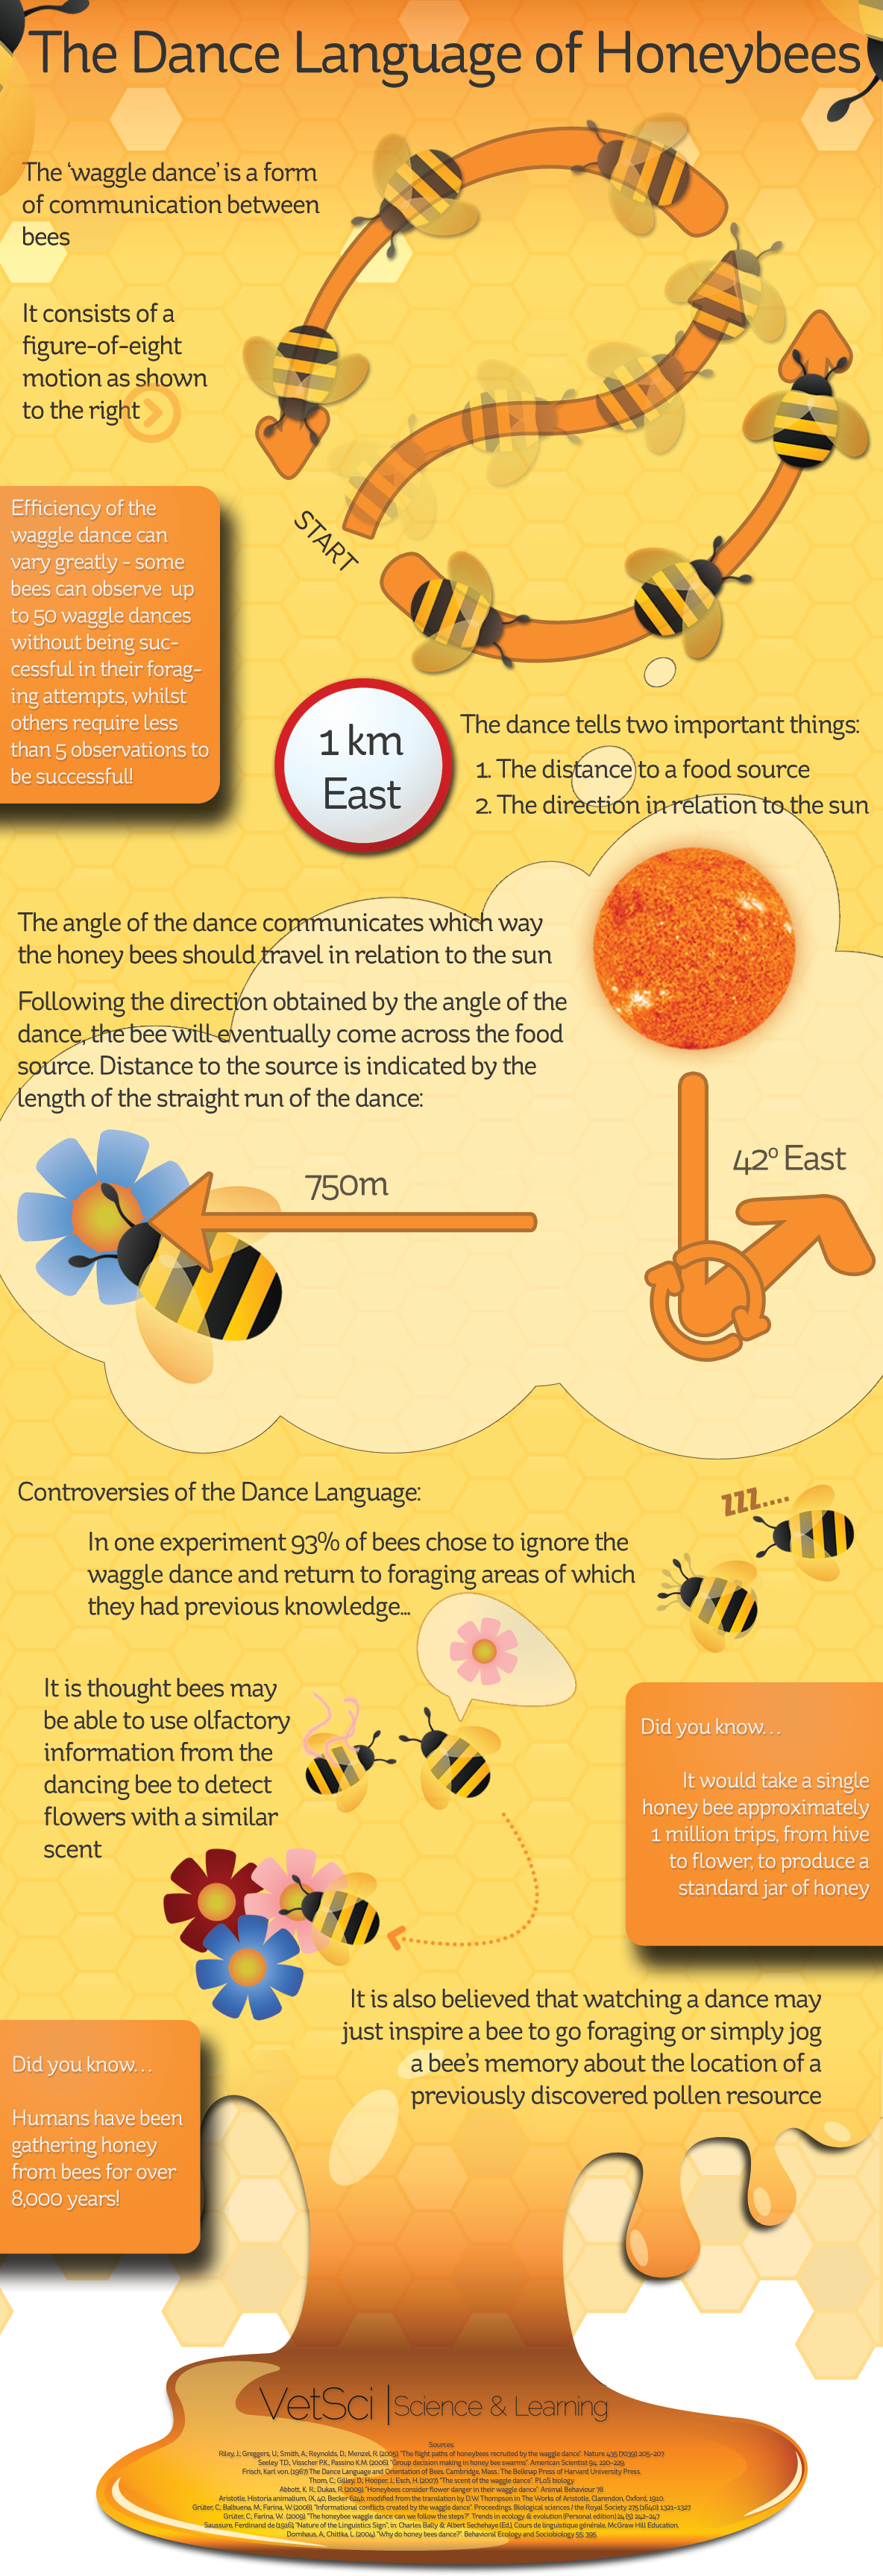 dance language of honey bees web The Dance Language of Honeybees infographics